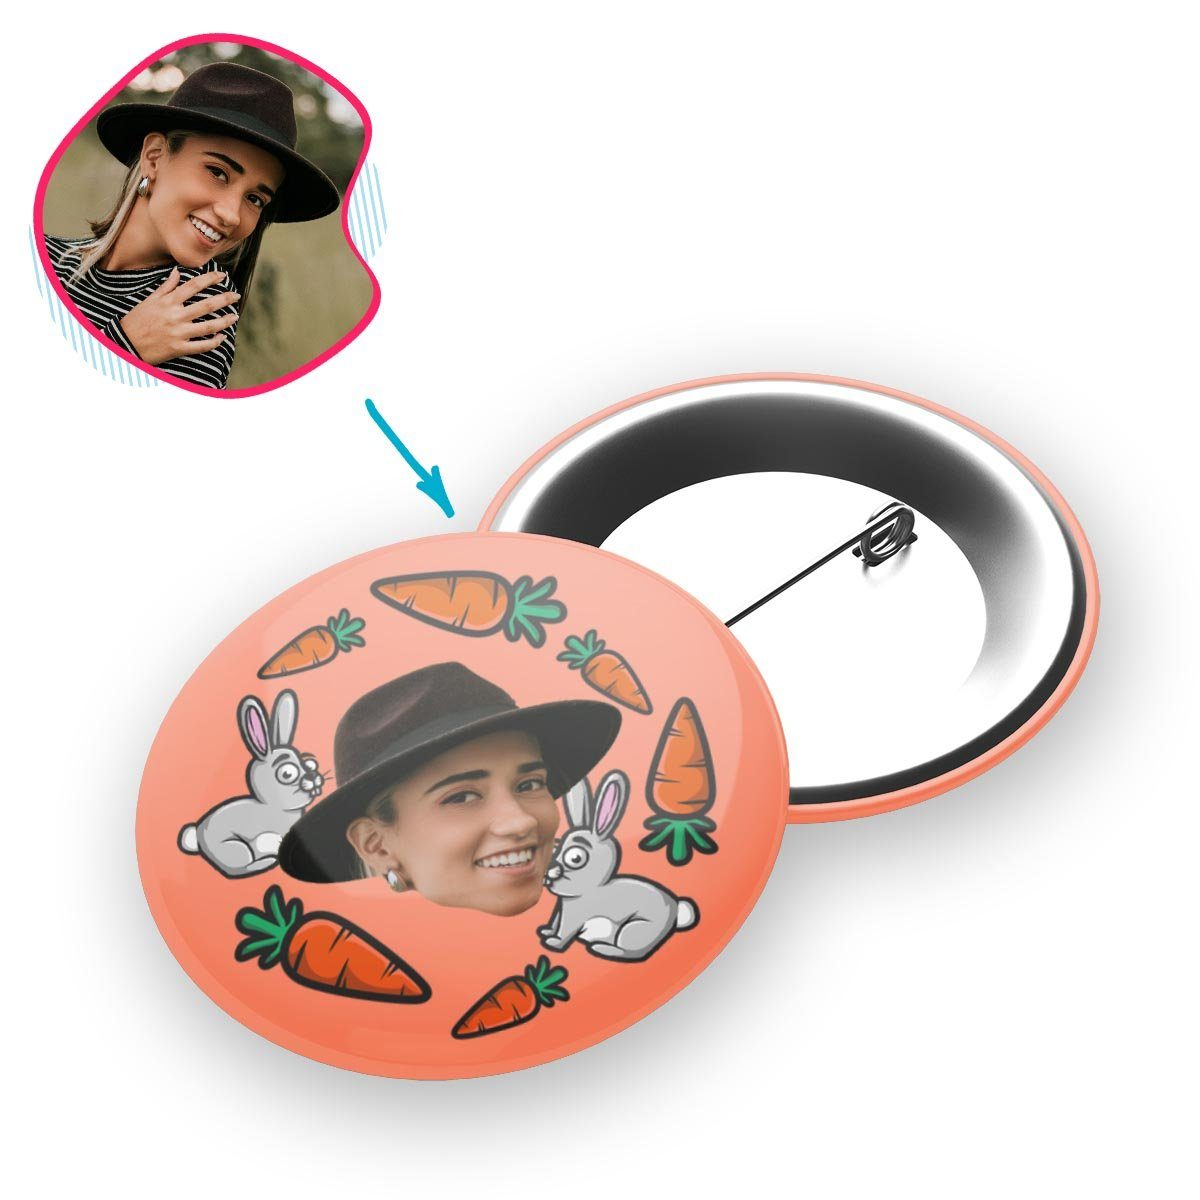 salmon Bunny pin personalized with photo of face printed on it